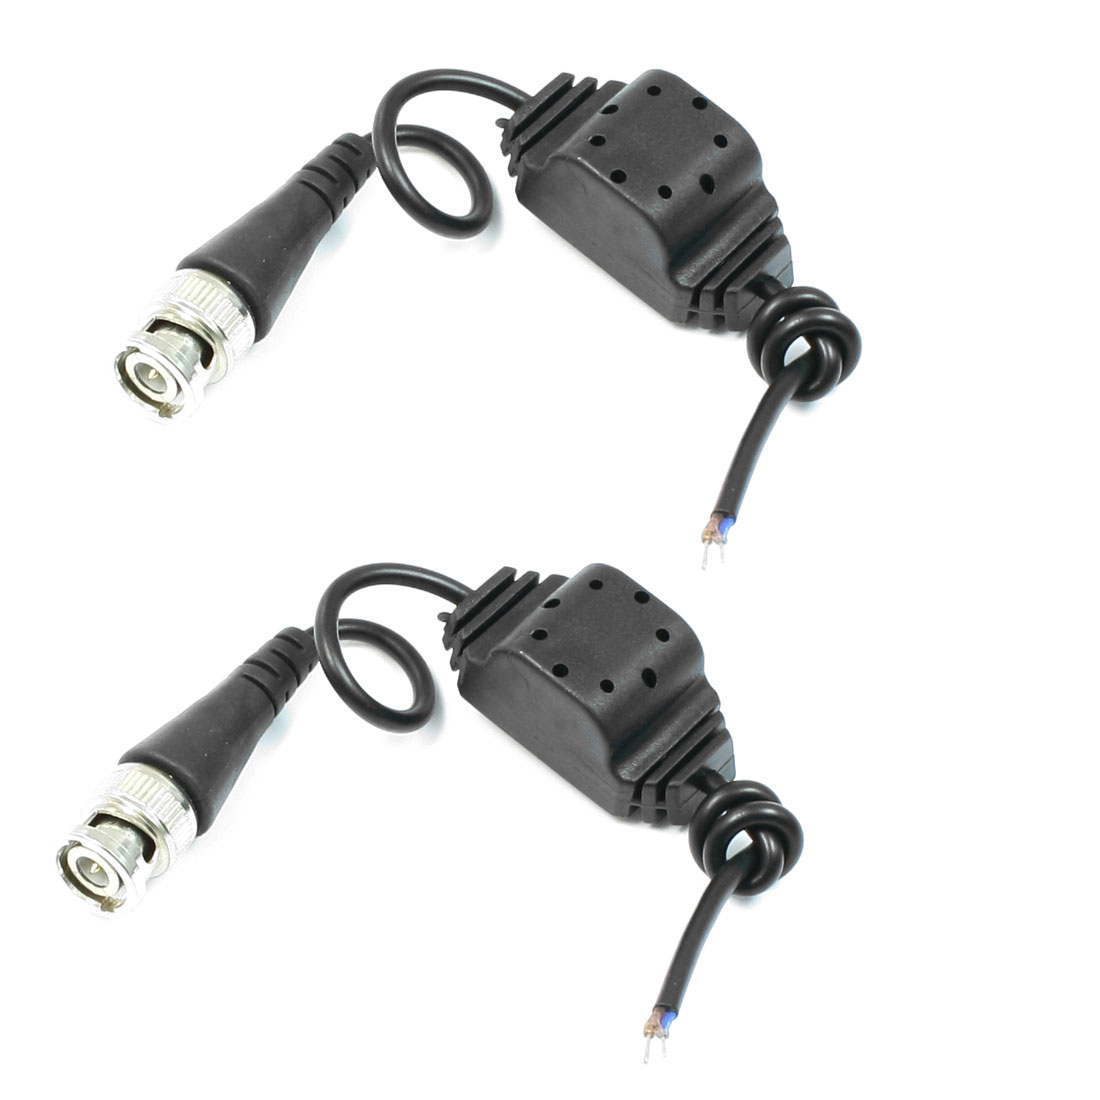 2pcs CCTV Security Camera Passive UTP Twisted Waterproof Video Balun Transceiver